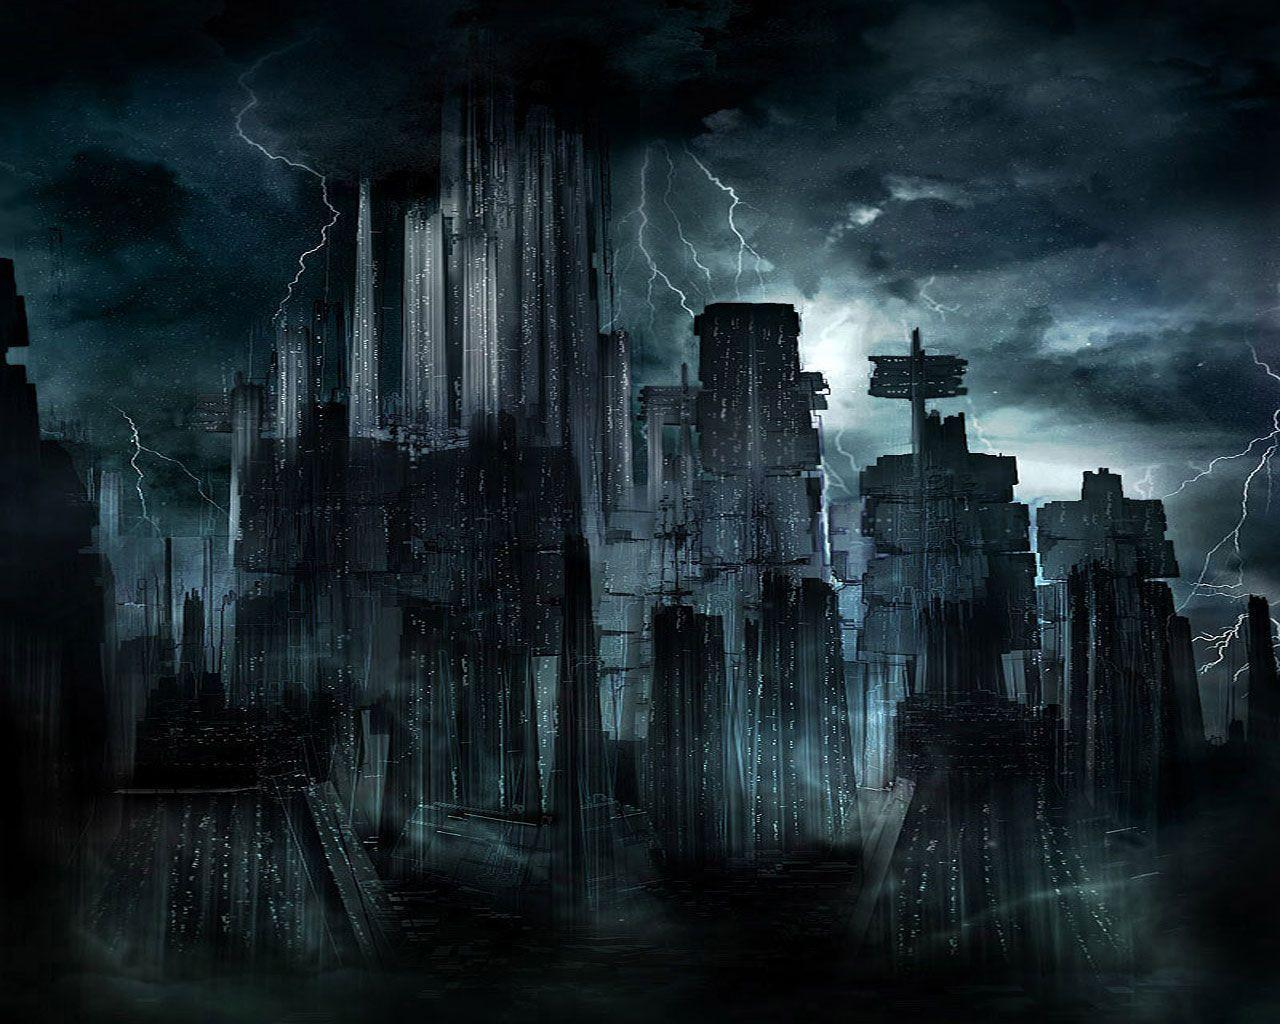 The Dark City wallpapers from Dark wallpapers